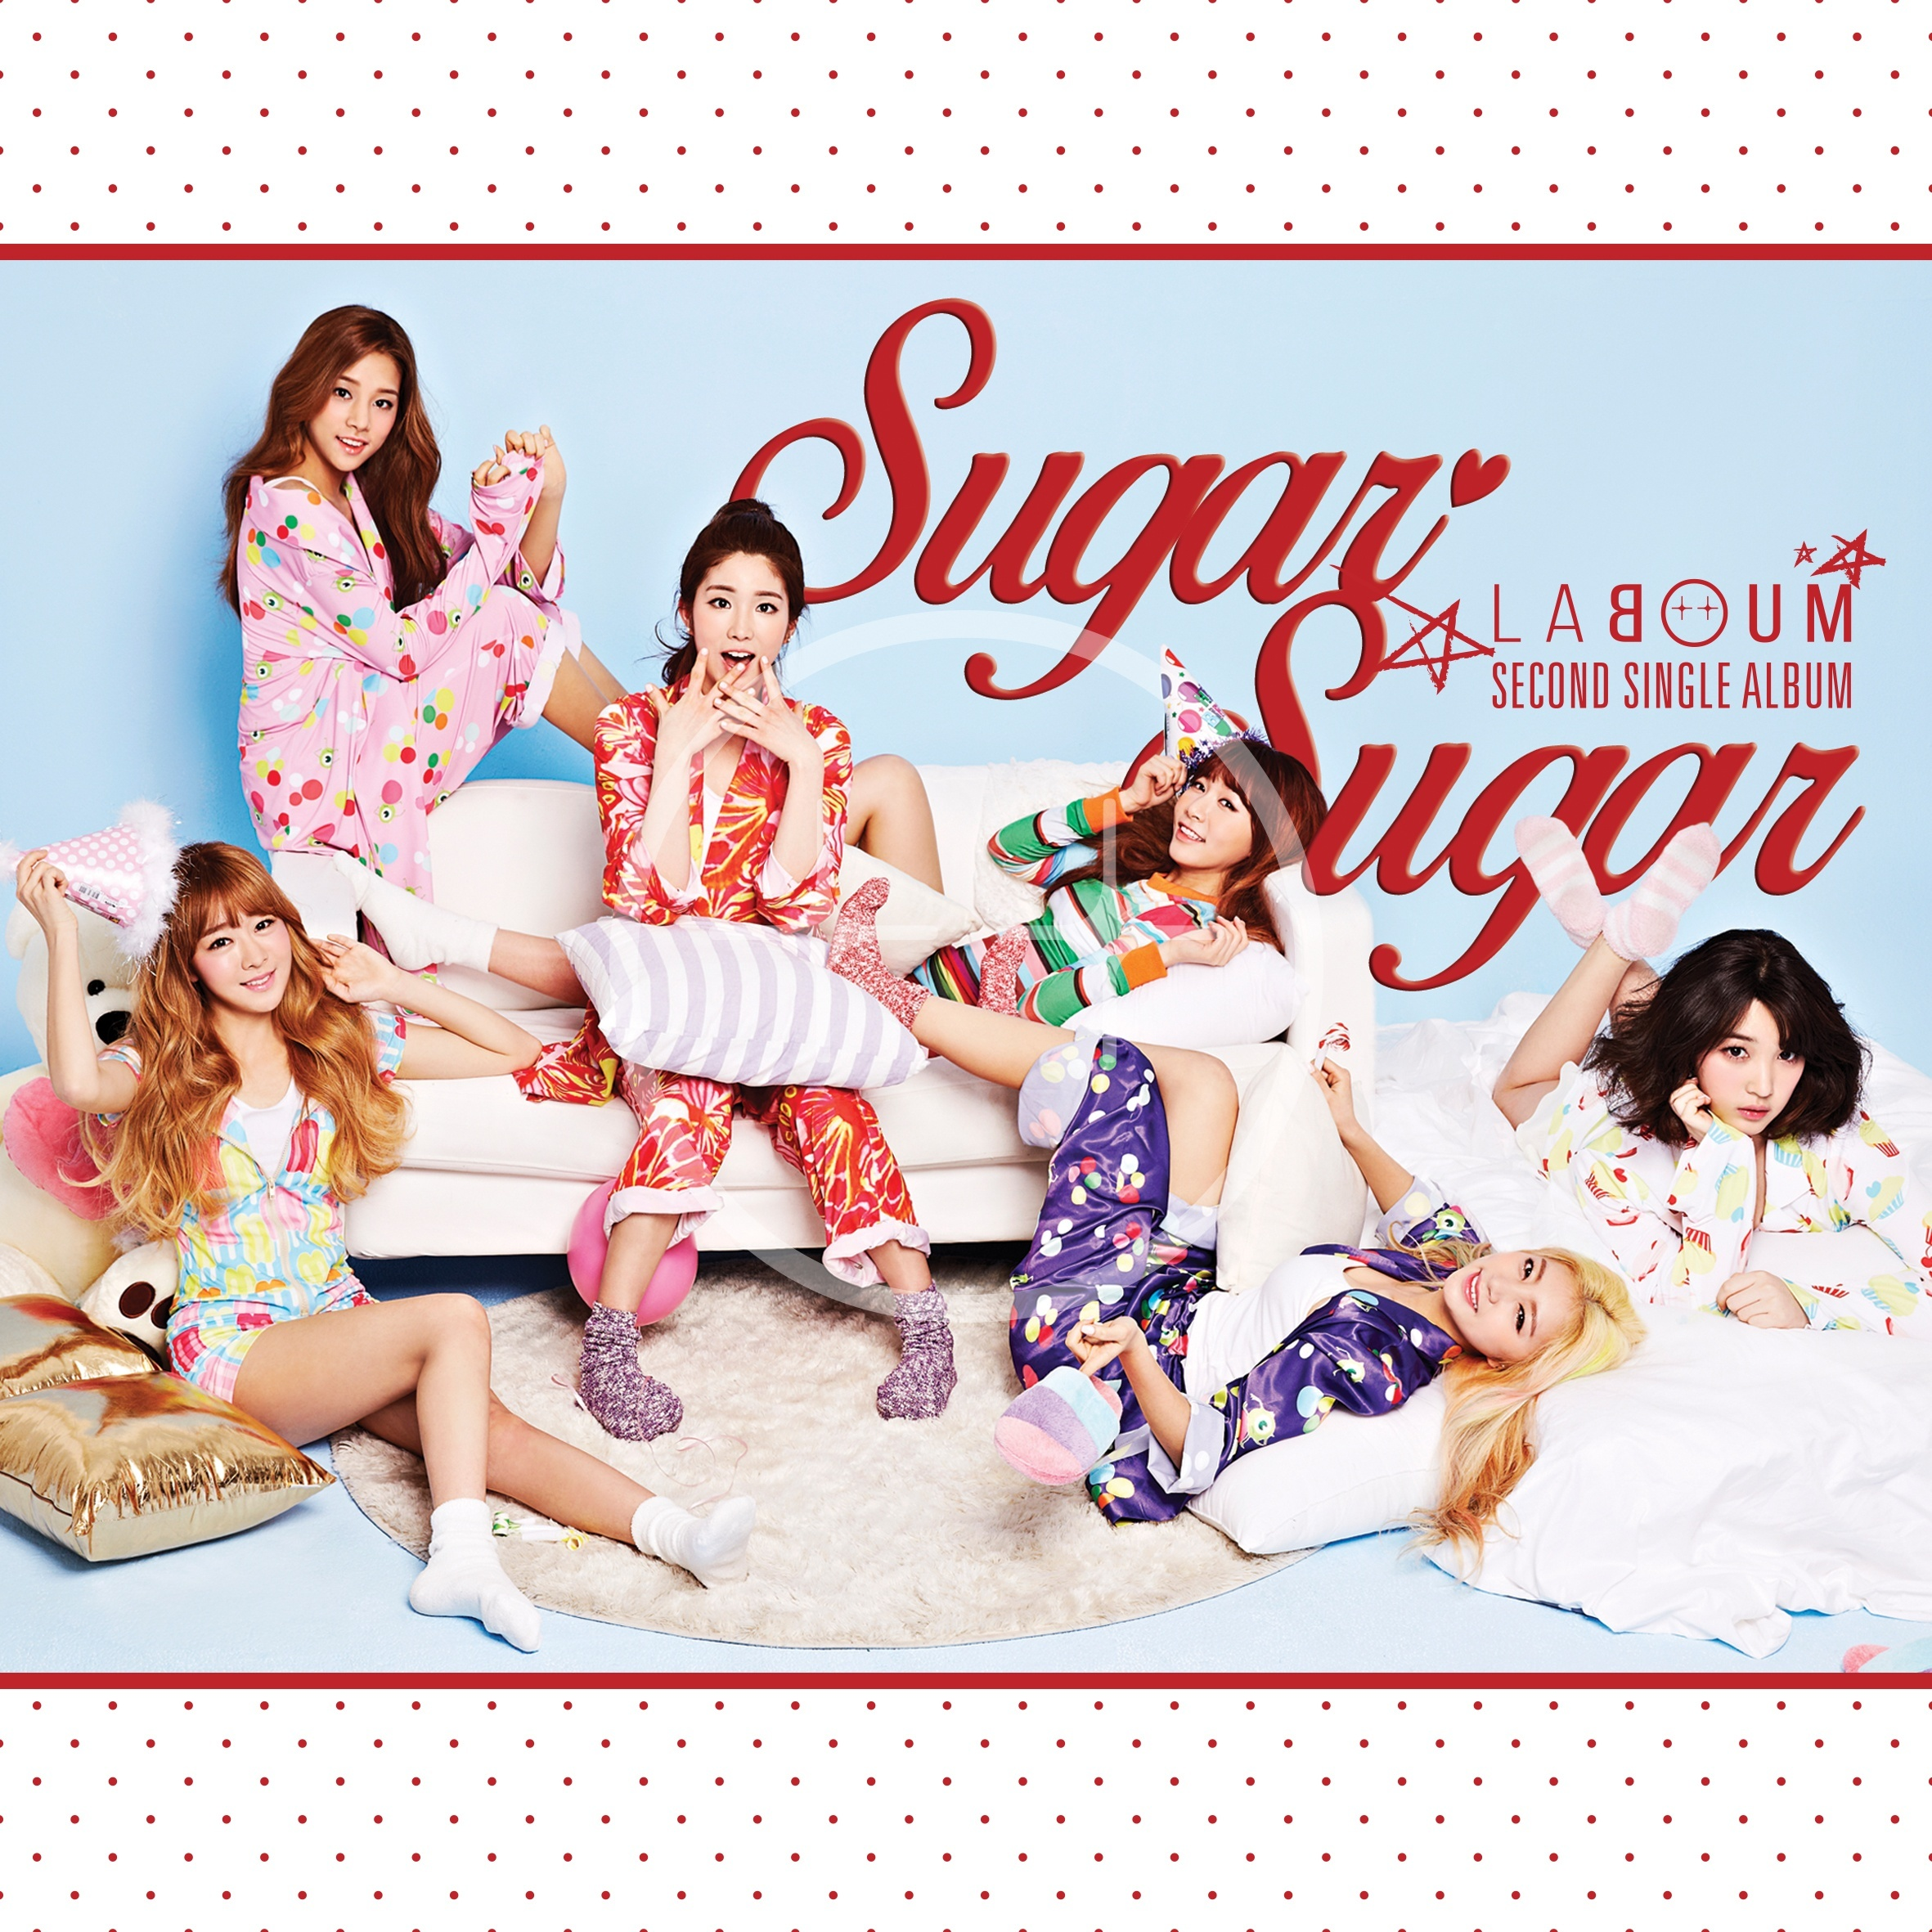 20170421.0444.13 LABOUM - Sugar Sugar cover.jpg